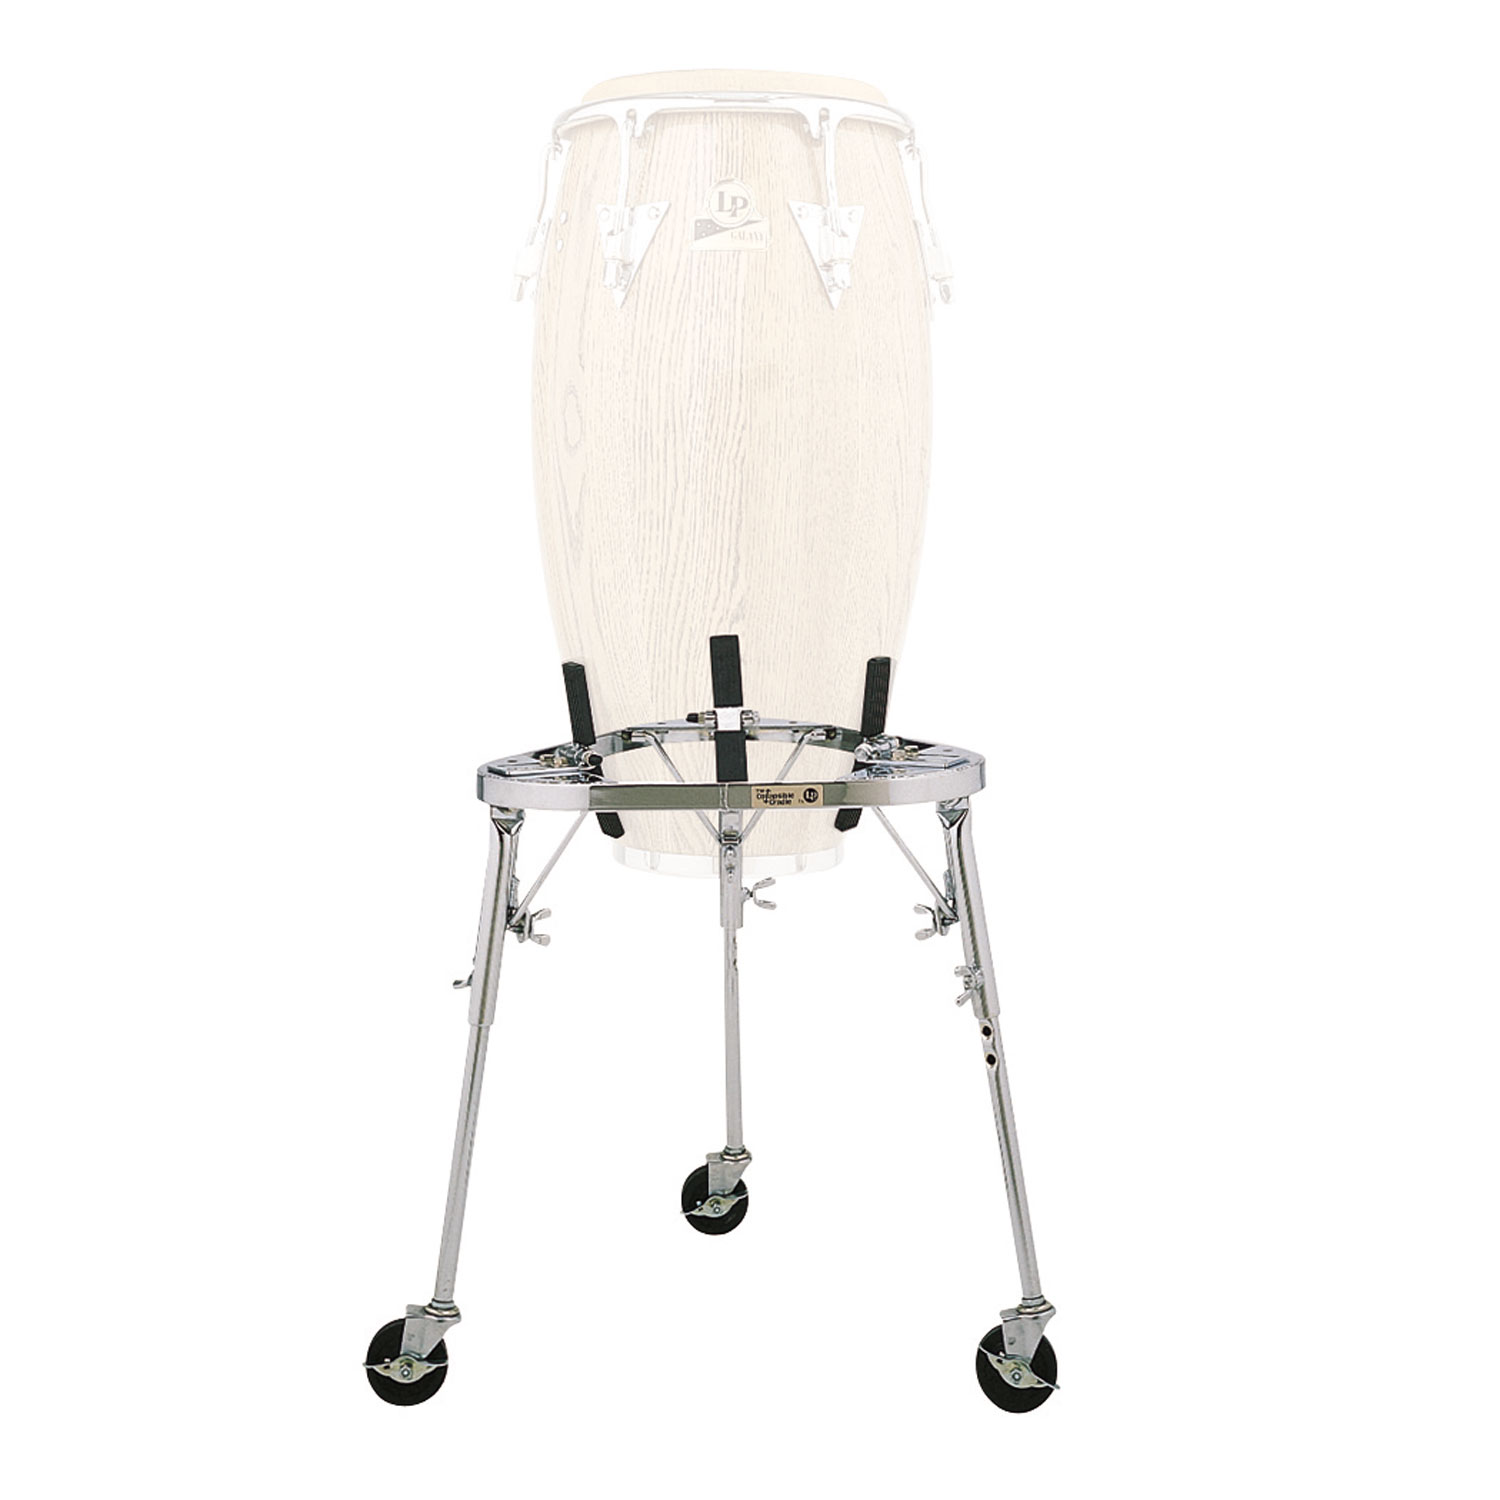 LP Collapsible Conga stand with legs & wheels